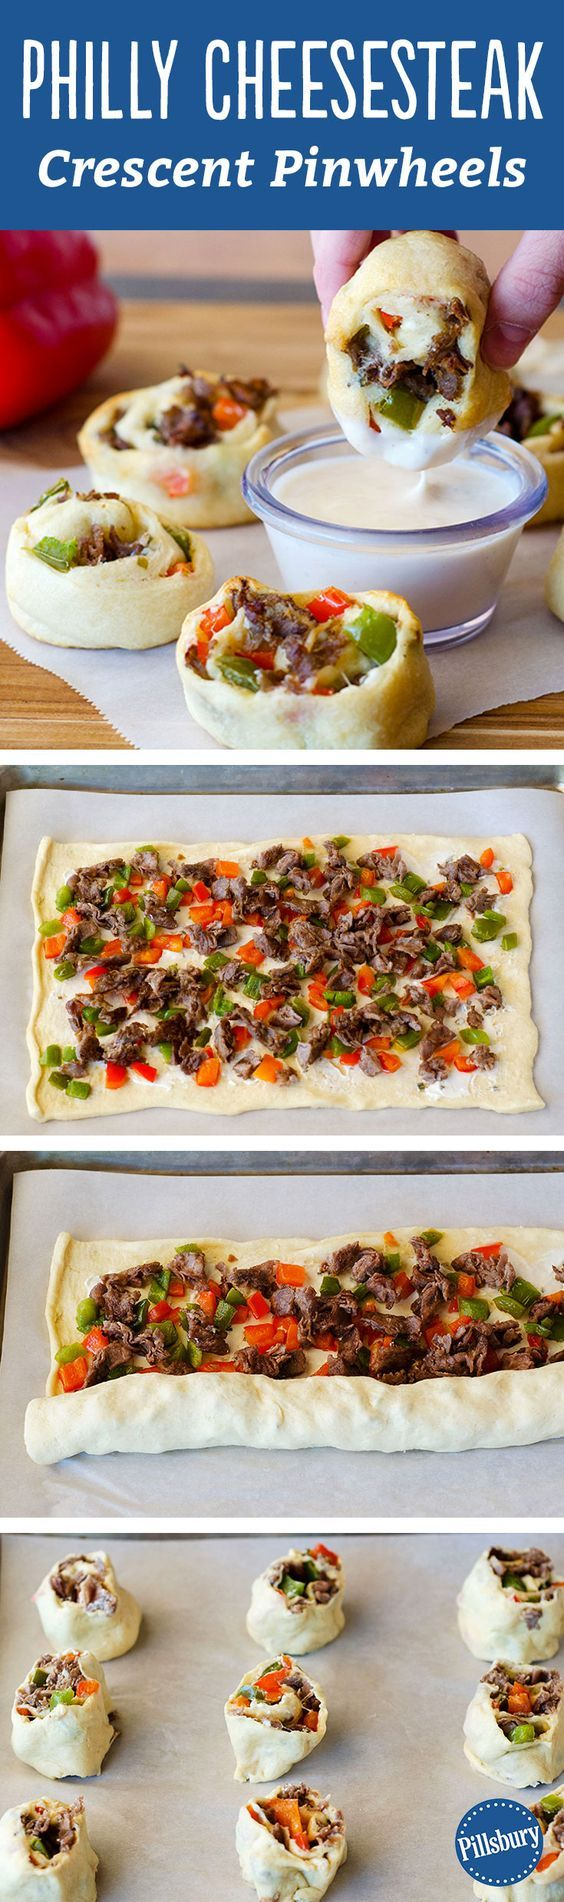 Our taste buds are buzzing after looking at these Philly Cheesesteak Crescent Pinwheels! The best part? They are incredibly easy-to-make (five-ingredient!) party appetizers and are sure to be a hit with your crowd. We suggest making them for a game day with alfredo sauce to dip.: